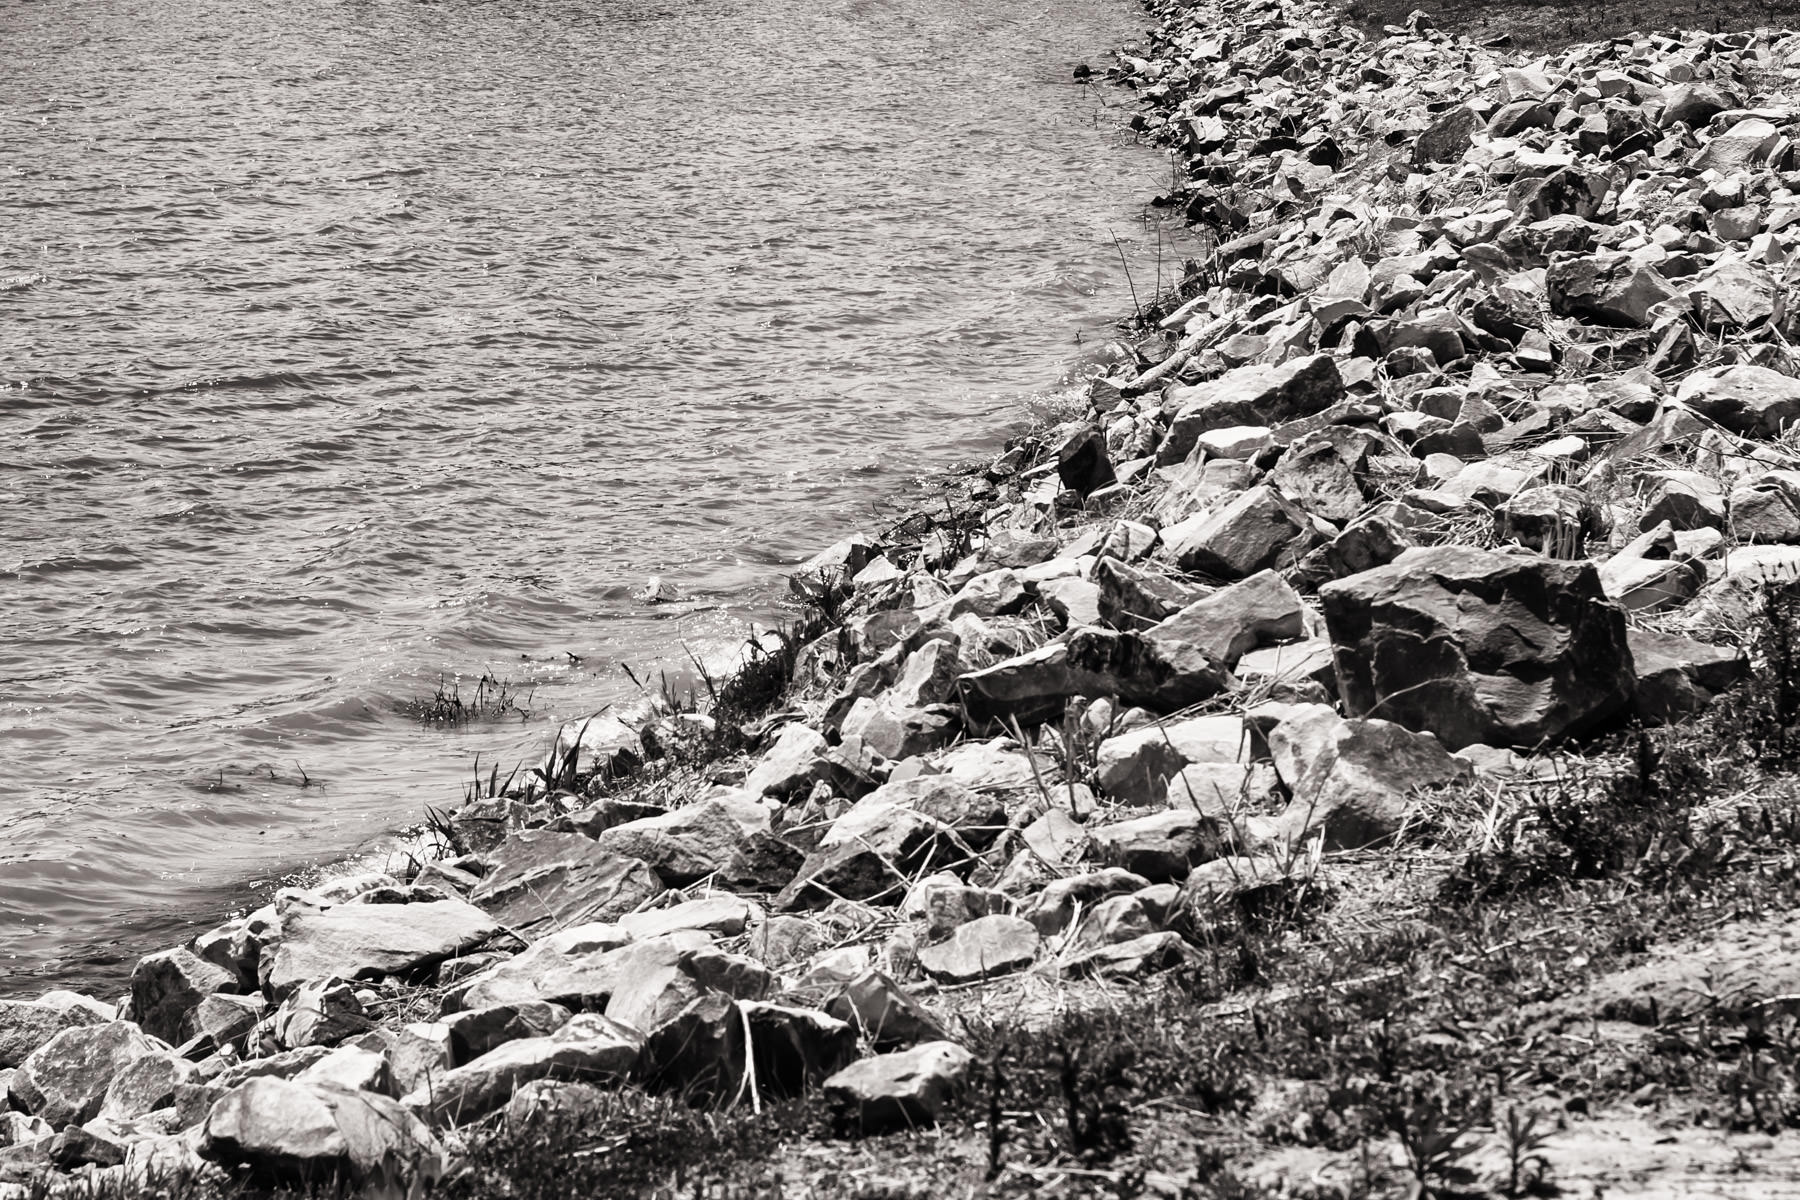 Rocks on the shore of the park's lake at Bonham State Park, Texas.